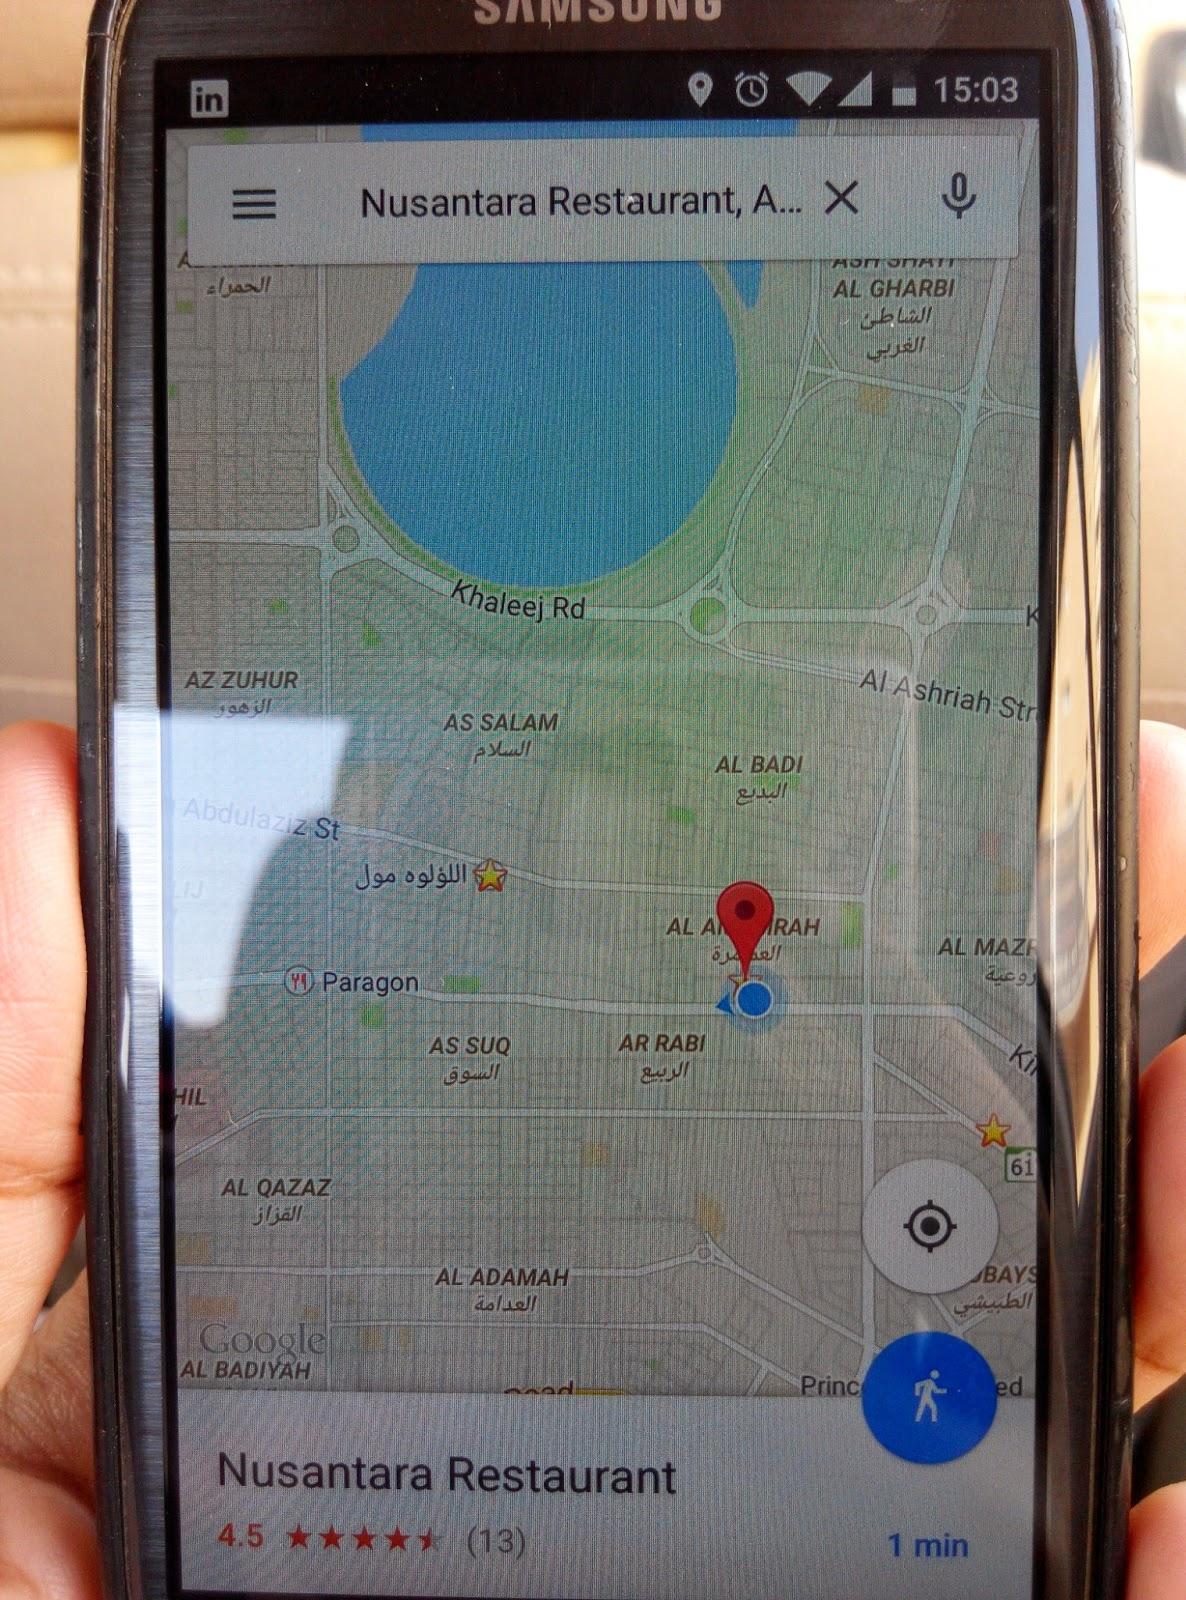 gps point of the restaurant